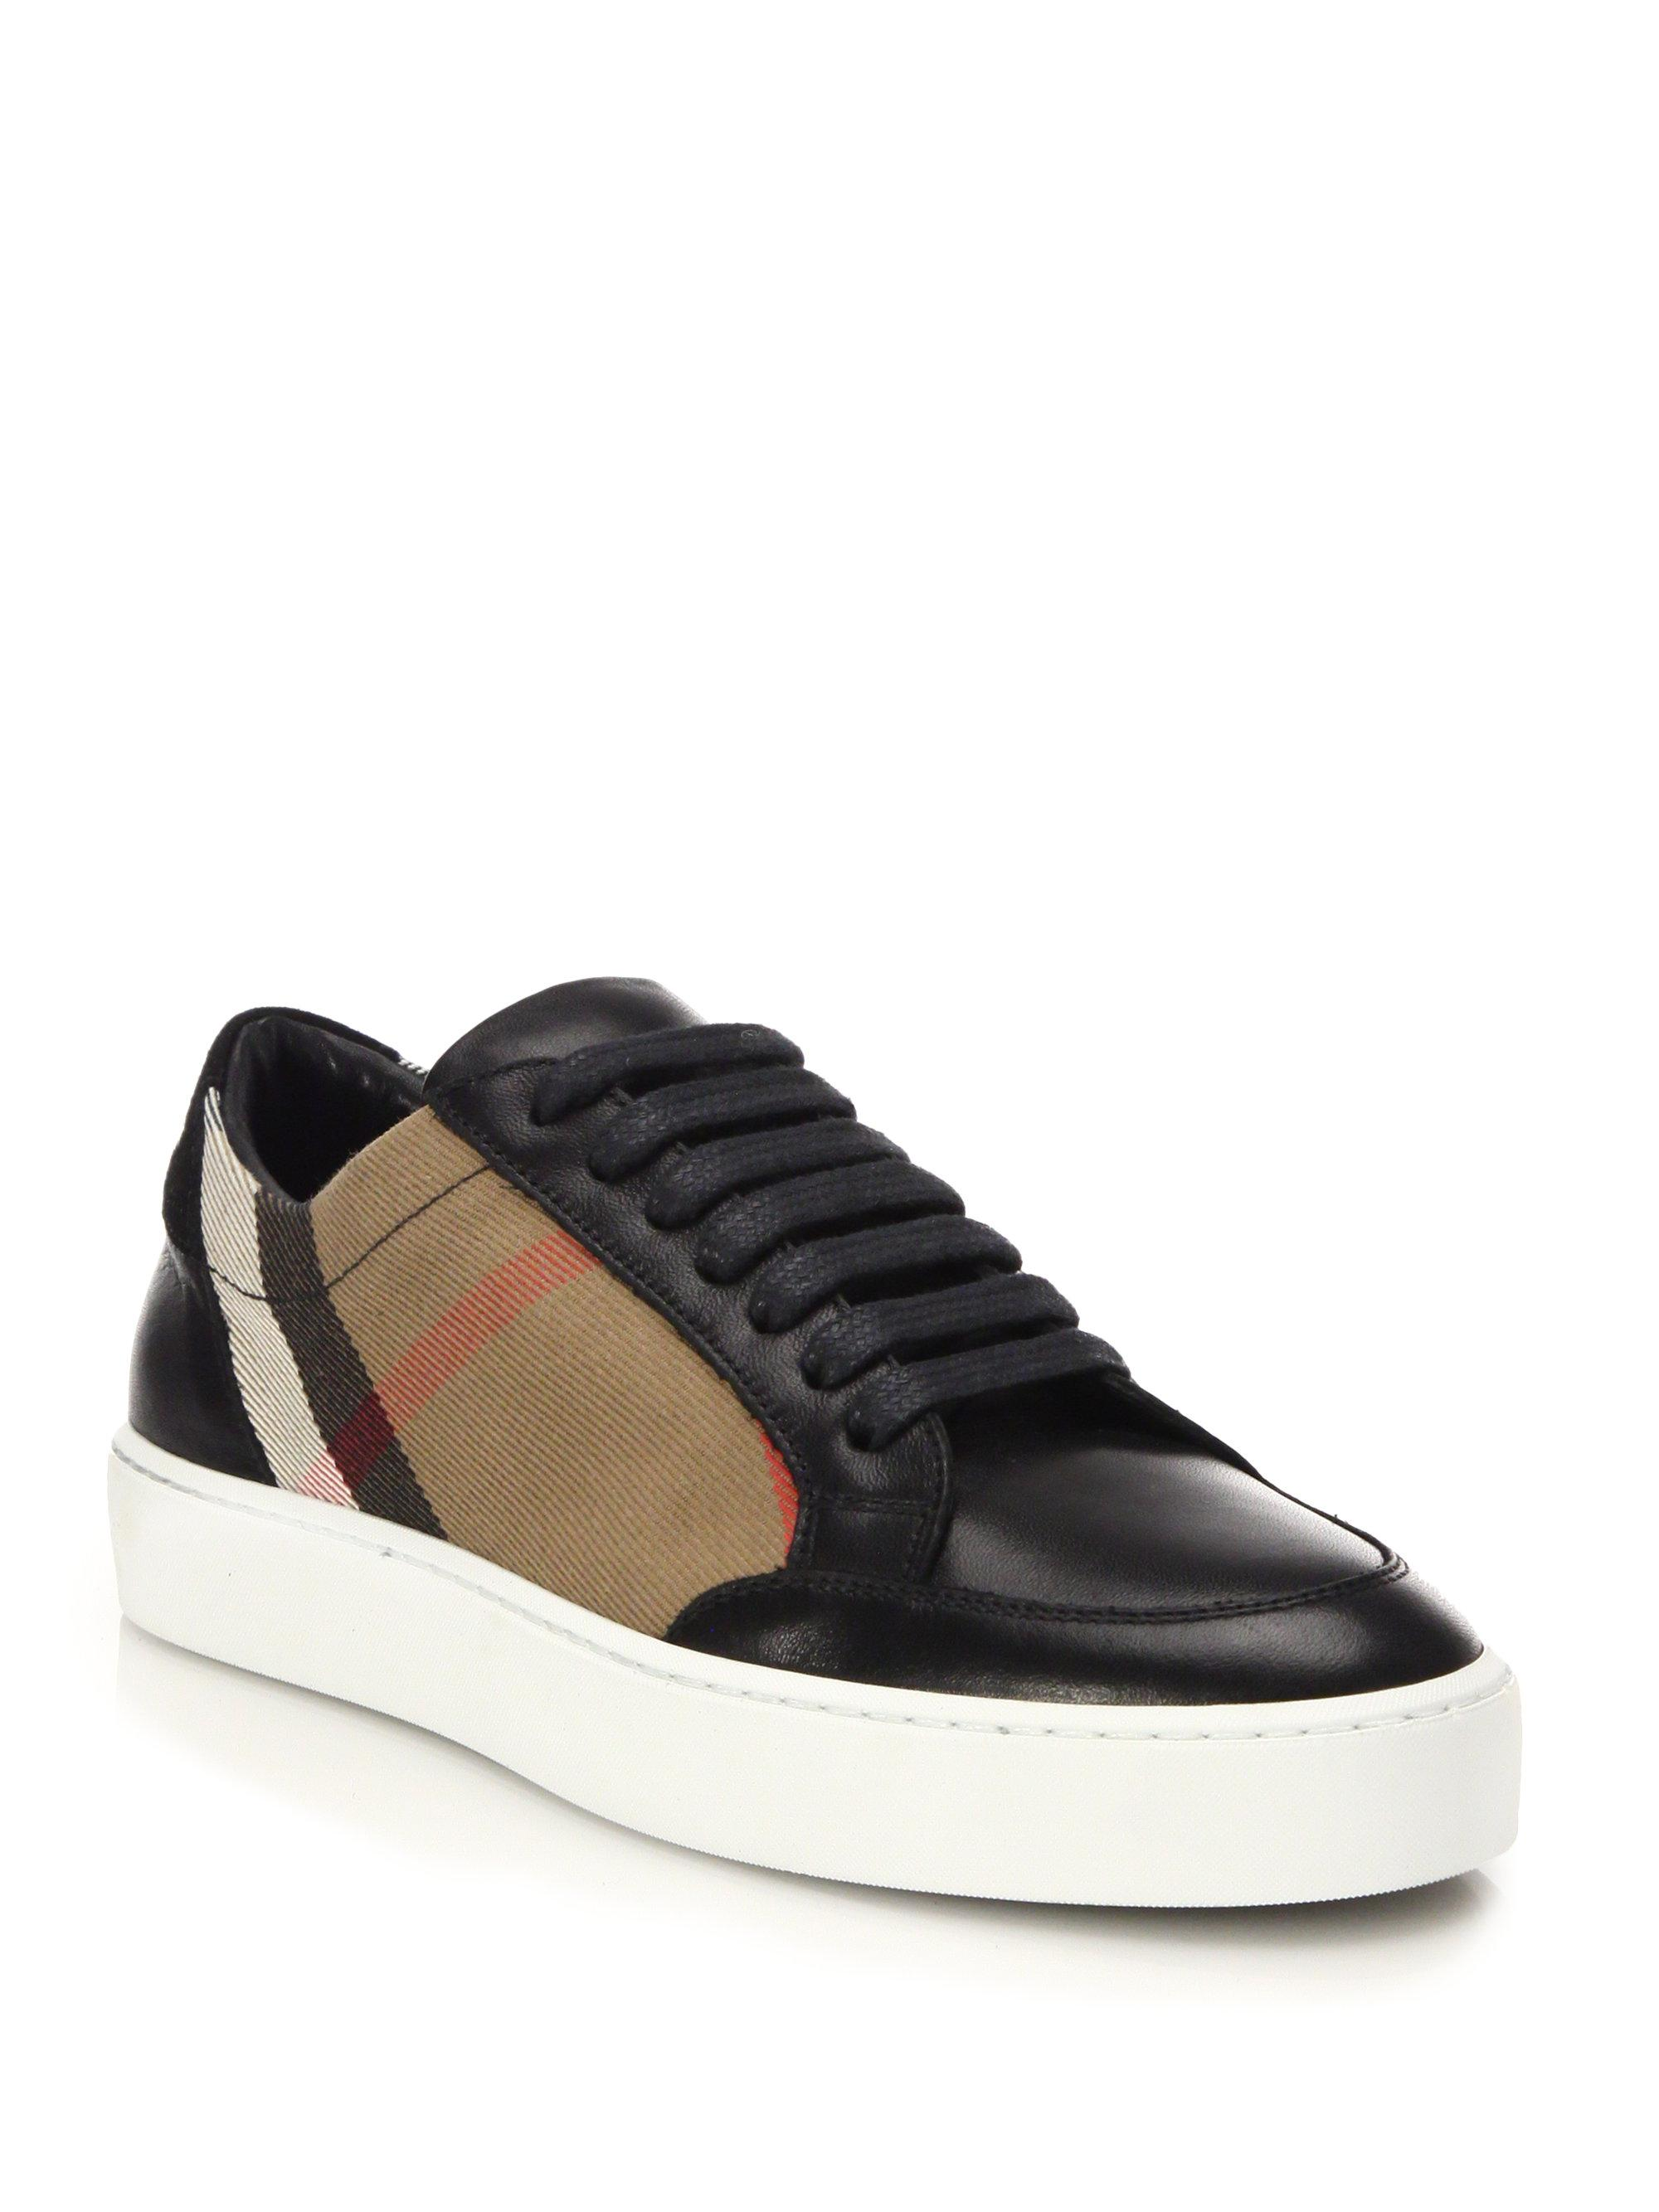 Leather and House Check Sneakers - Black Burberry 8UEukTisM2